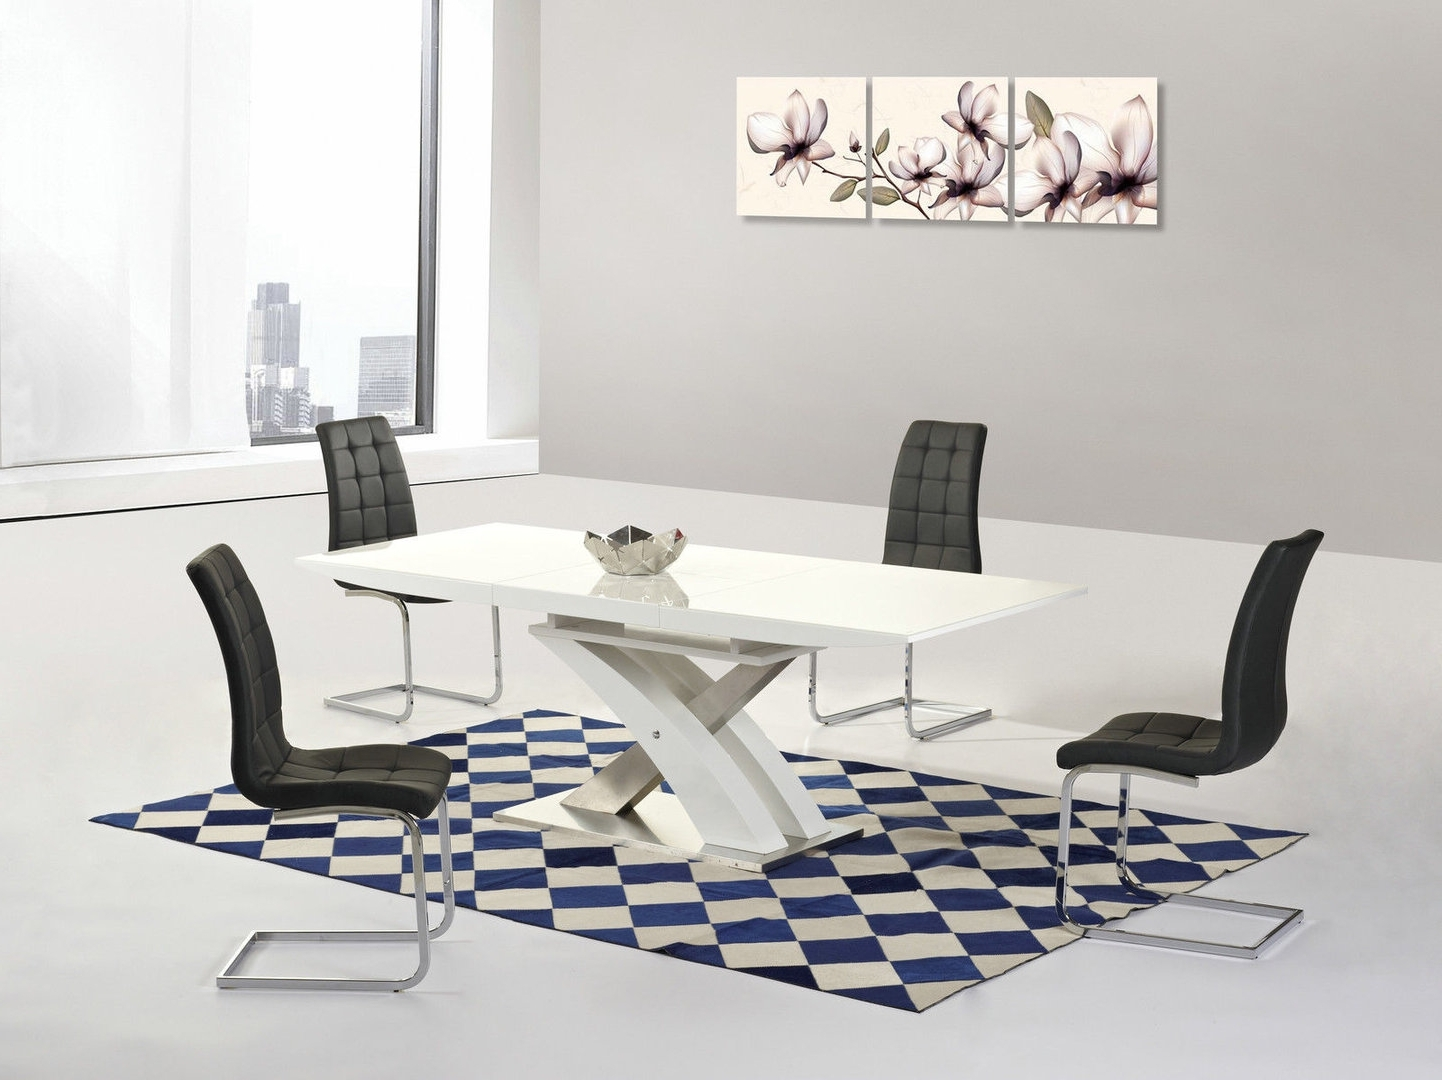 High Gloss White Extending Dining Tables Intended For Most Recently Released Modern White High Gloss / Glass Extending Dining Table & 8 Chairs (Gallery 4 of 25)